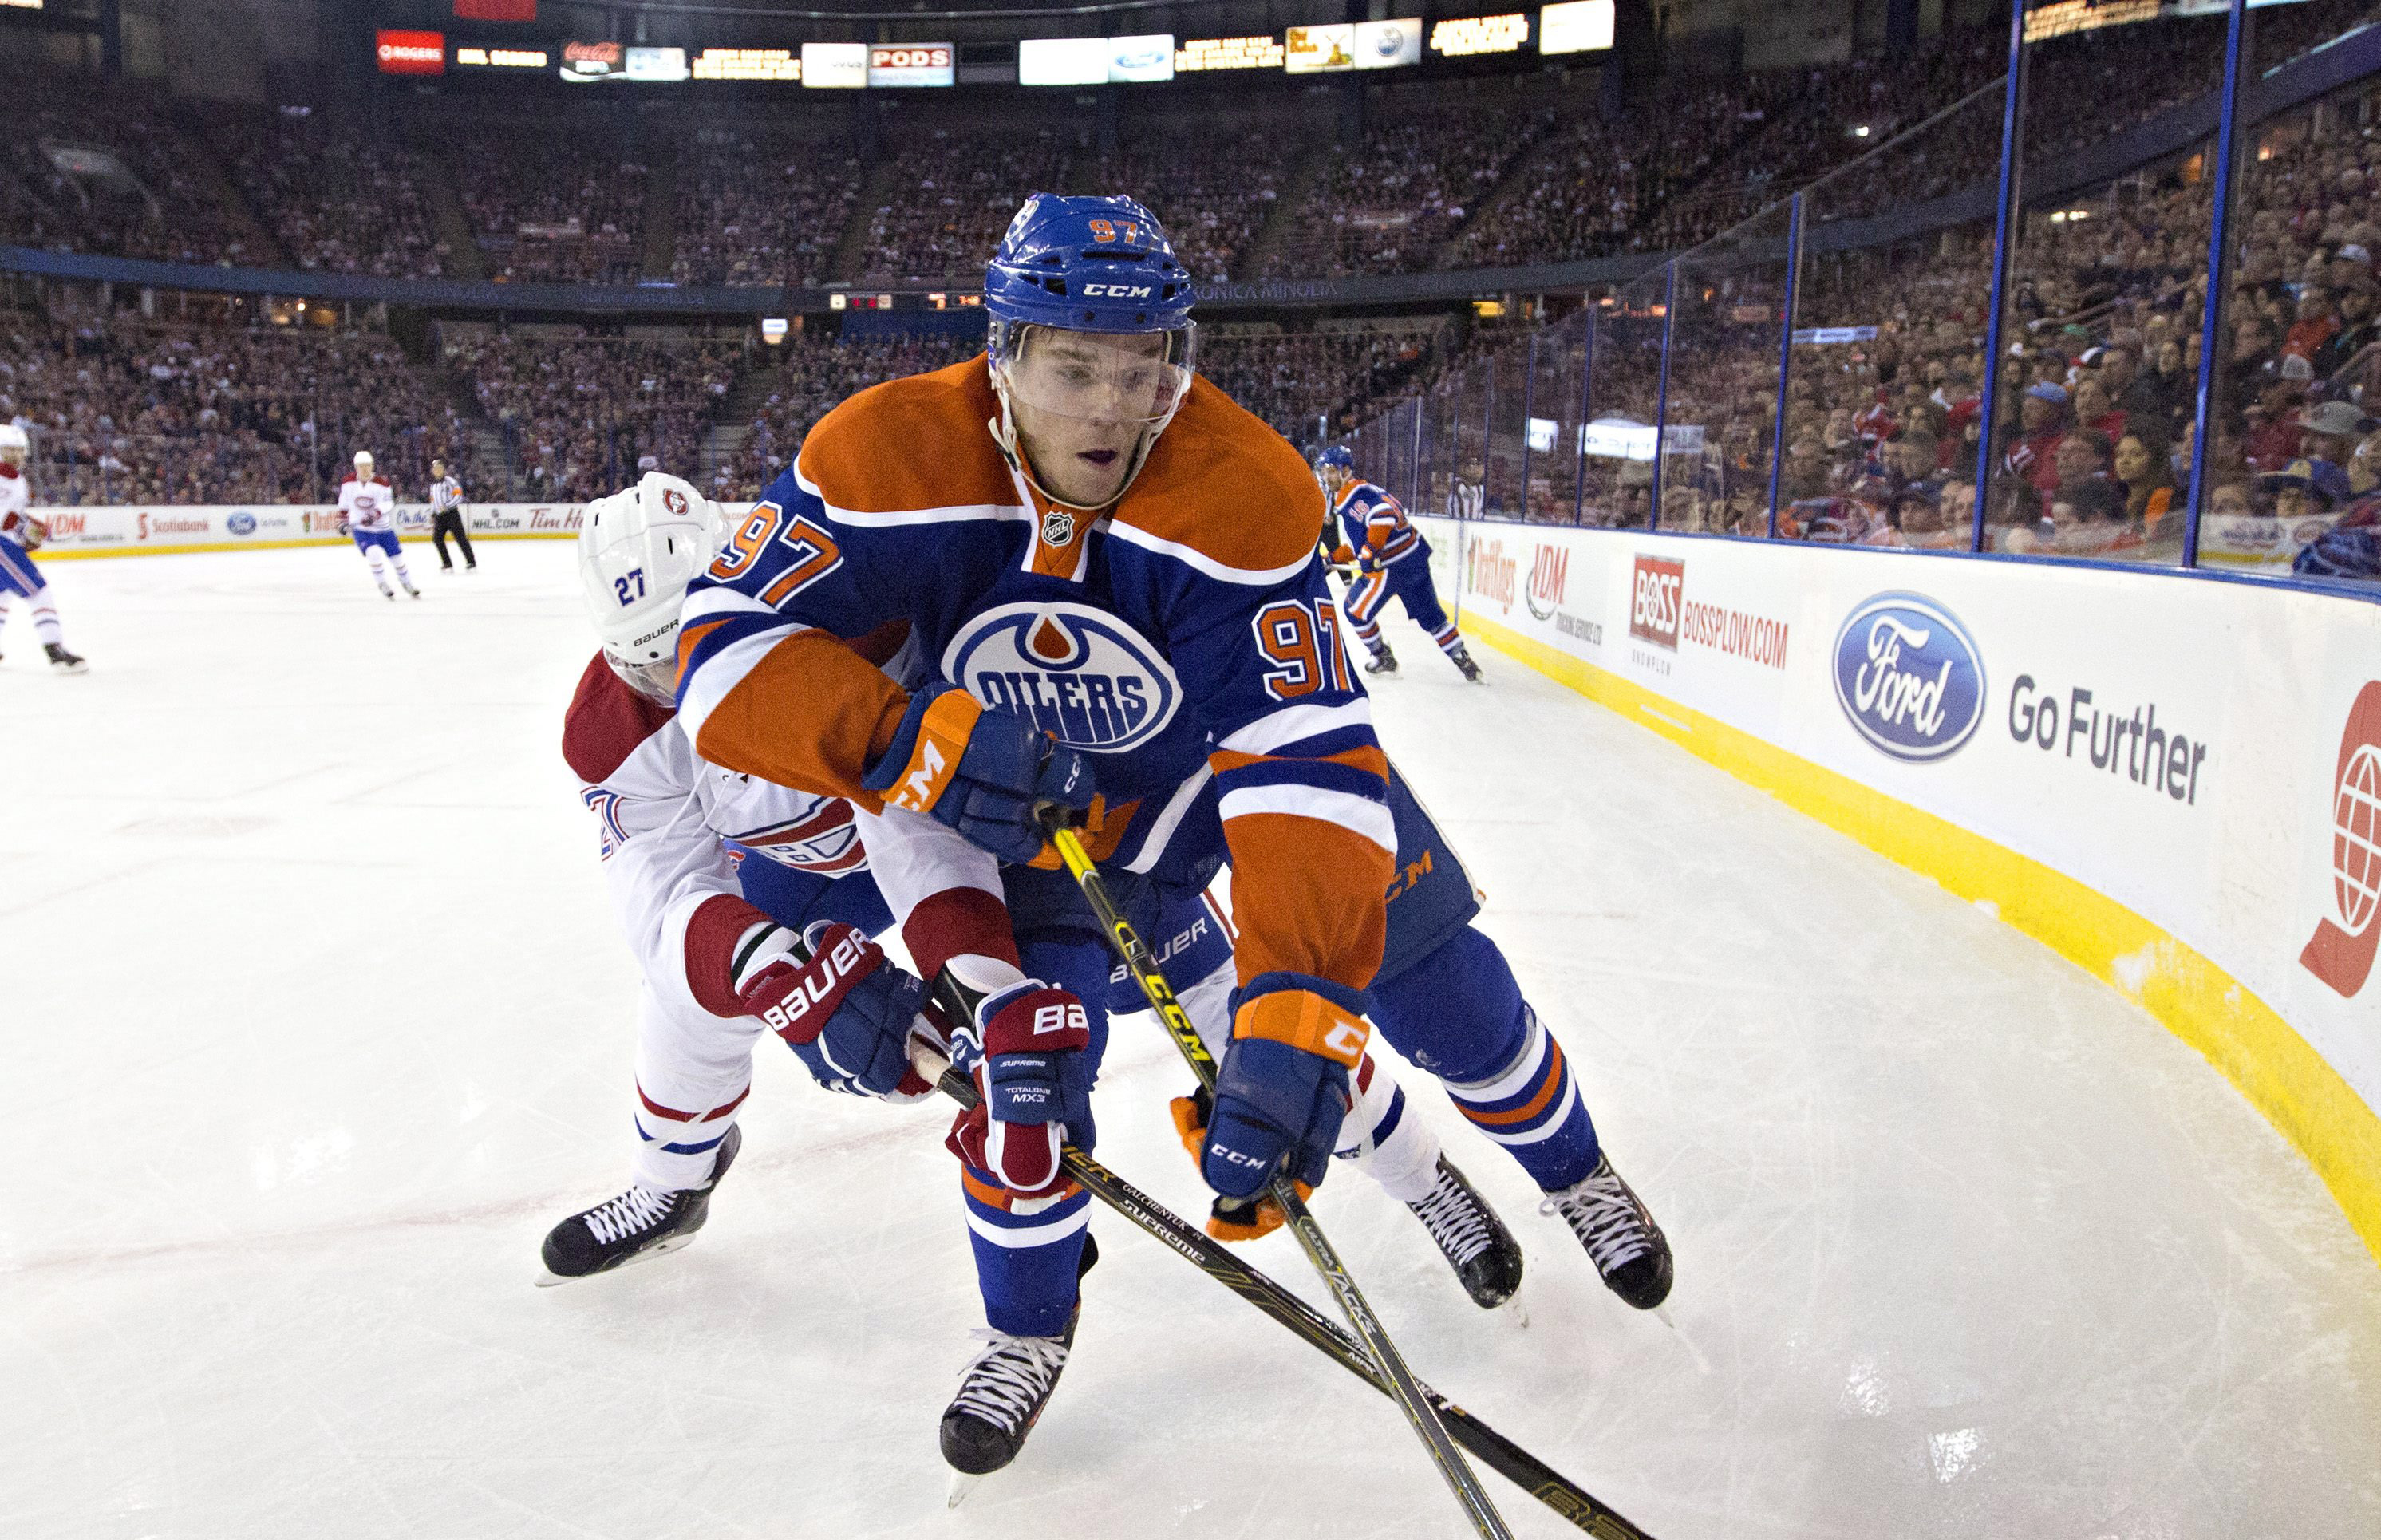 Montreal Canadiens' Alex Galchenyuk (27) and Edmonton Oilers' Connor McDavid (97) compete during first-period NHL hockey game action in Edmonton, Alberta, Thursday, Oct. 29, 2015. (Jason Franson/The Canadian Press via AP) MANDATORY CREDIT